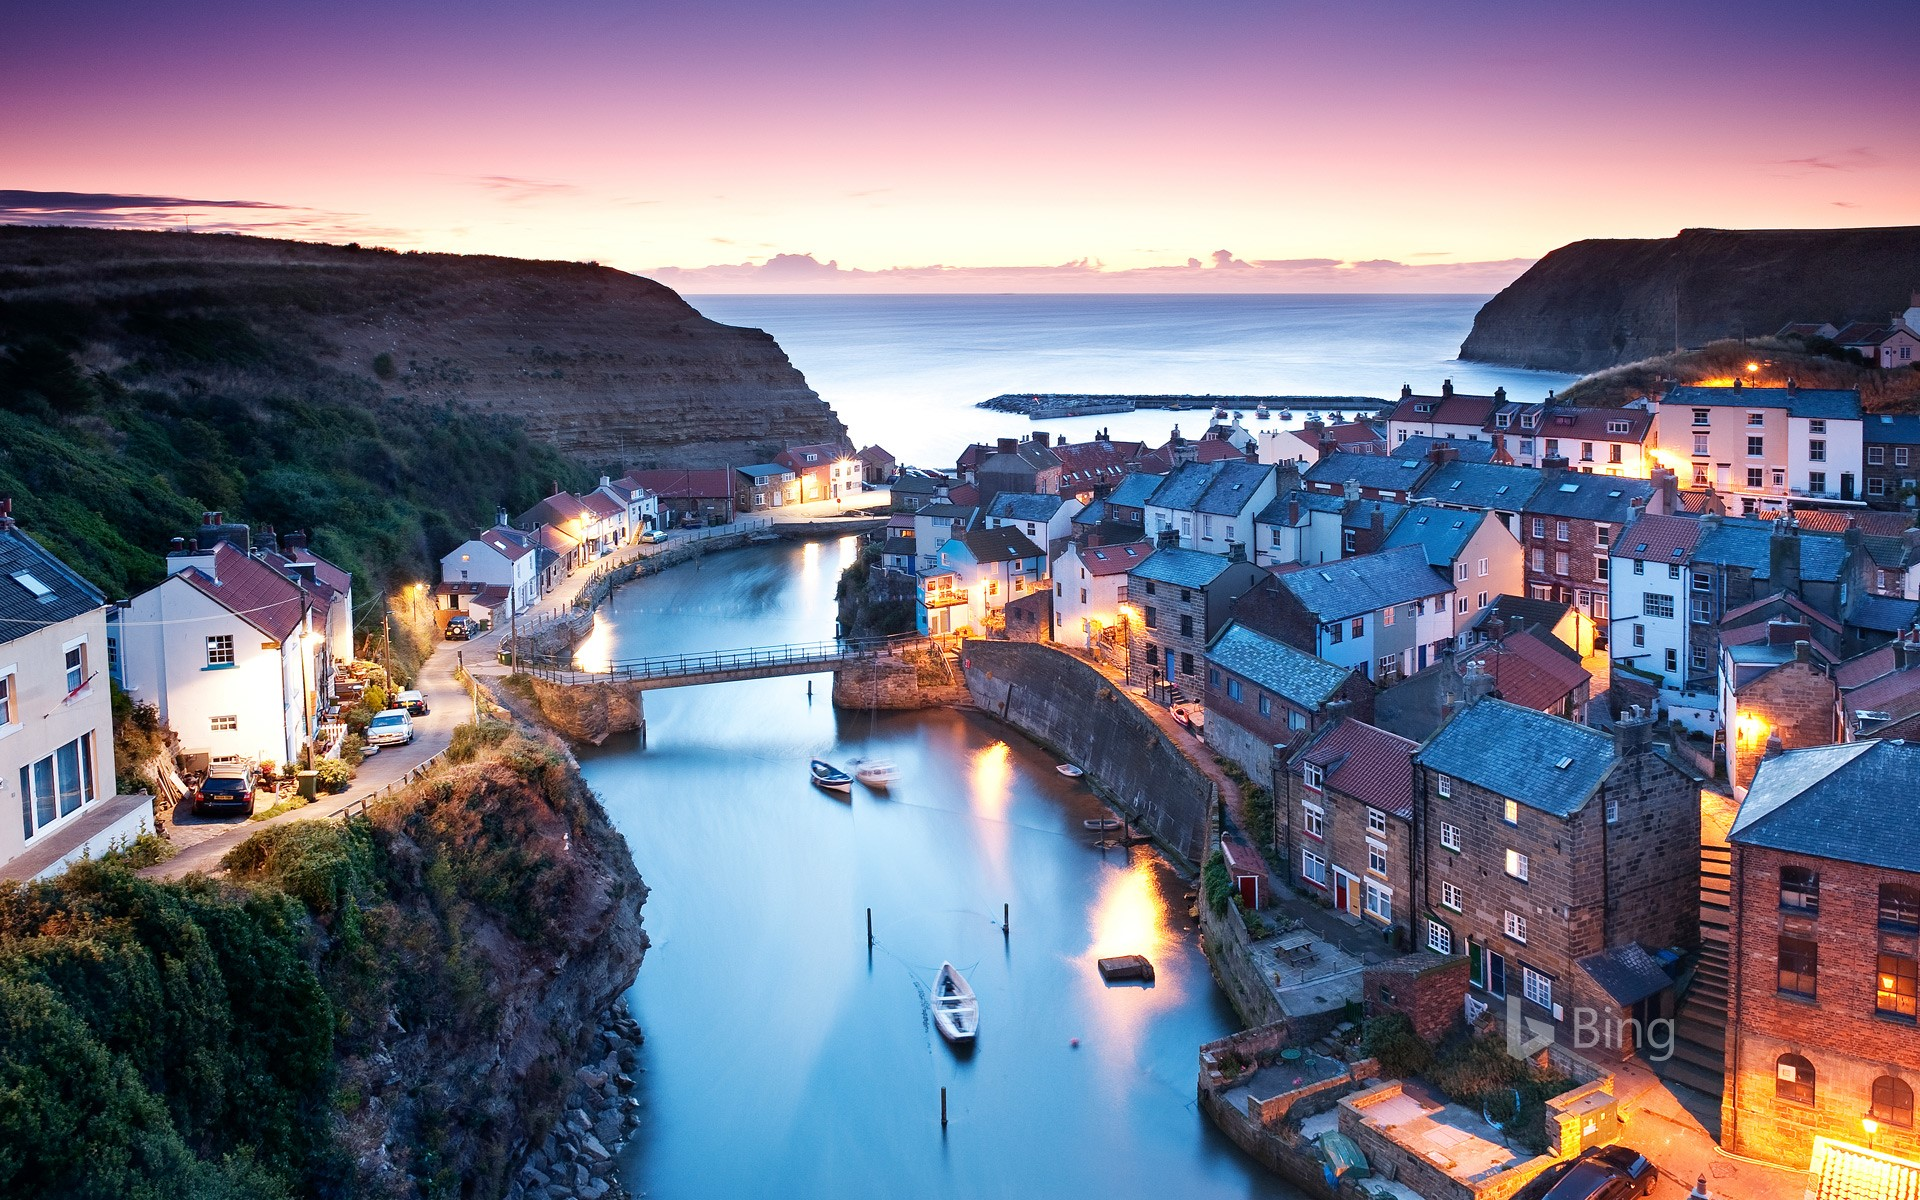 Village of Staithes in North Yorkshire, England